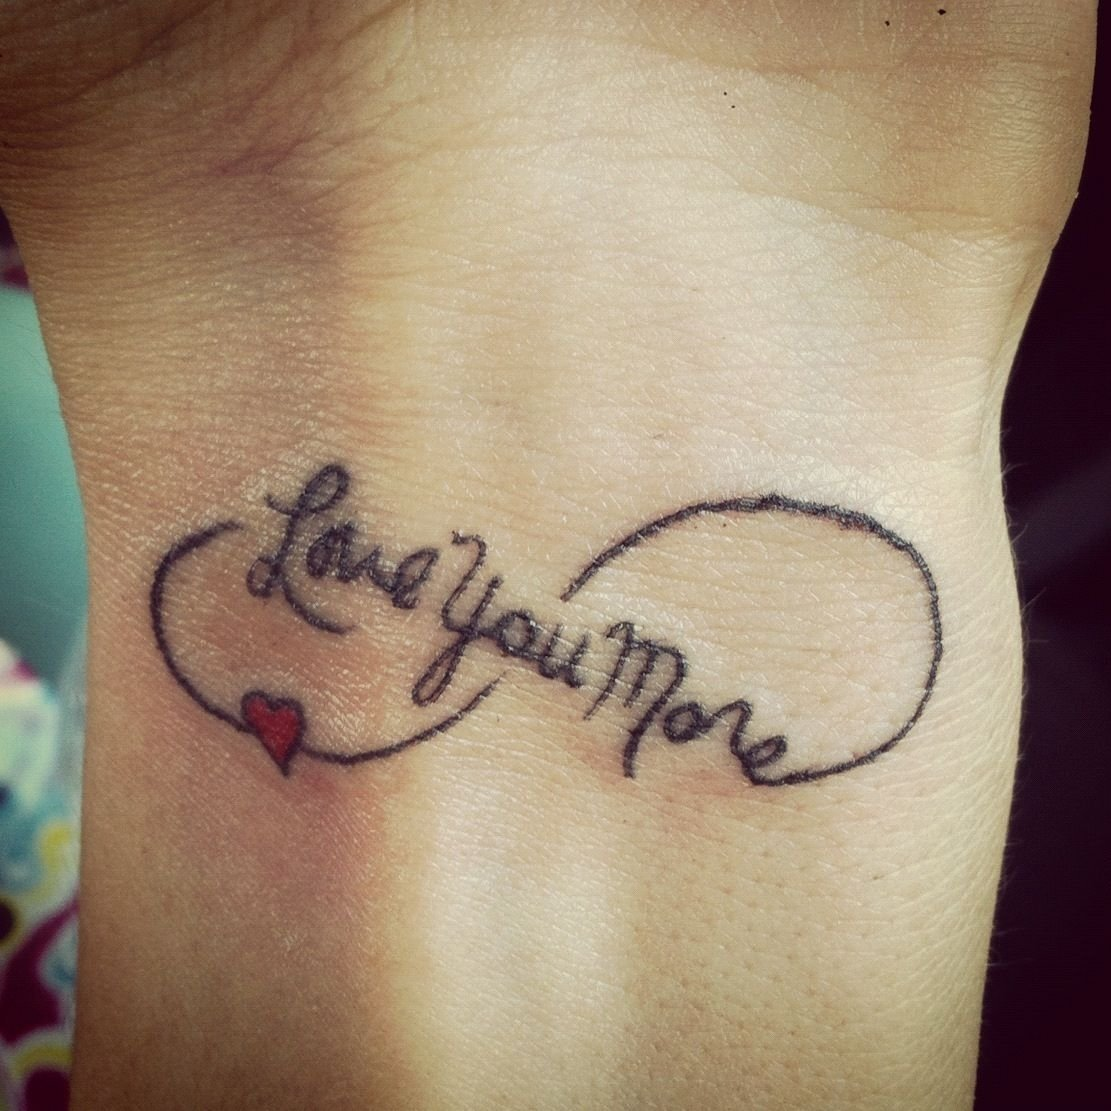 10 Unique Mom And Dad Tattoos Ideas mom and daughter tattoos reminds me of me and my mom i always tell 2020